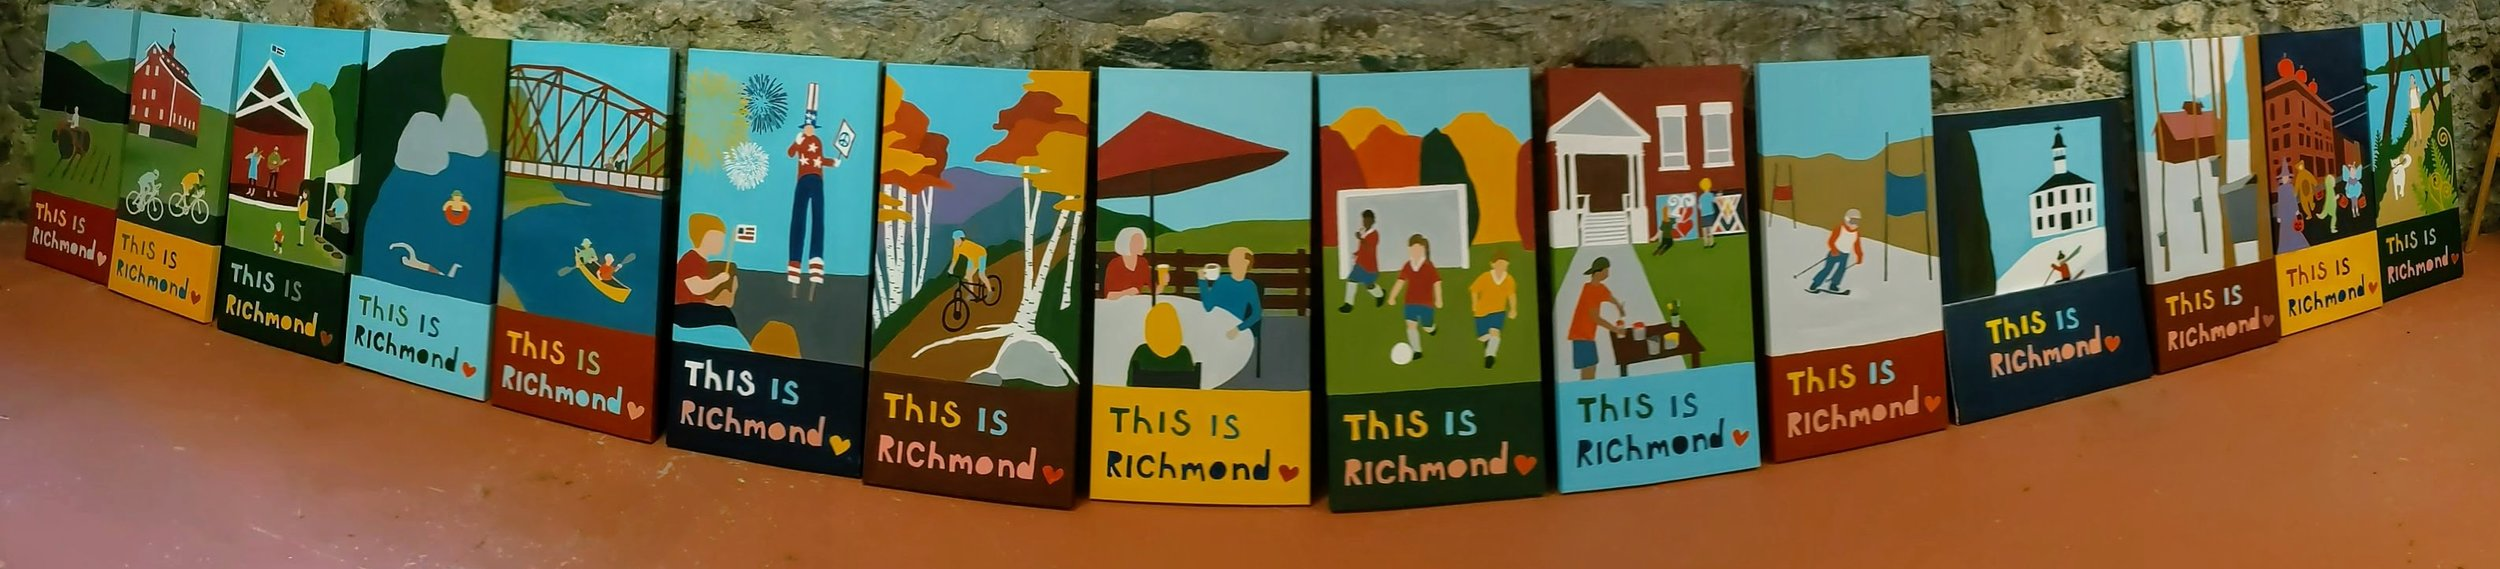 Click photo above to learn about the making of the Richmond town banners